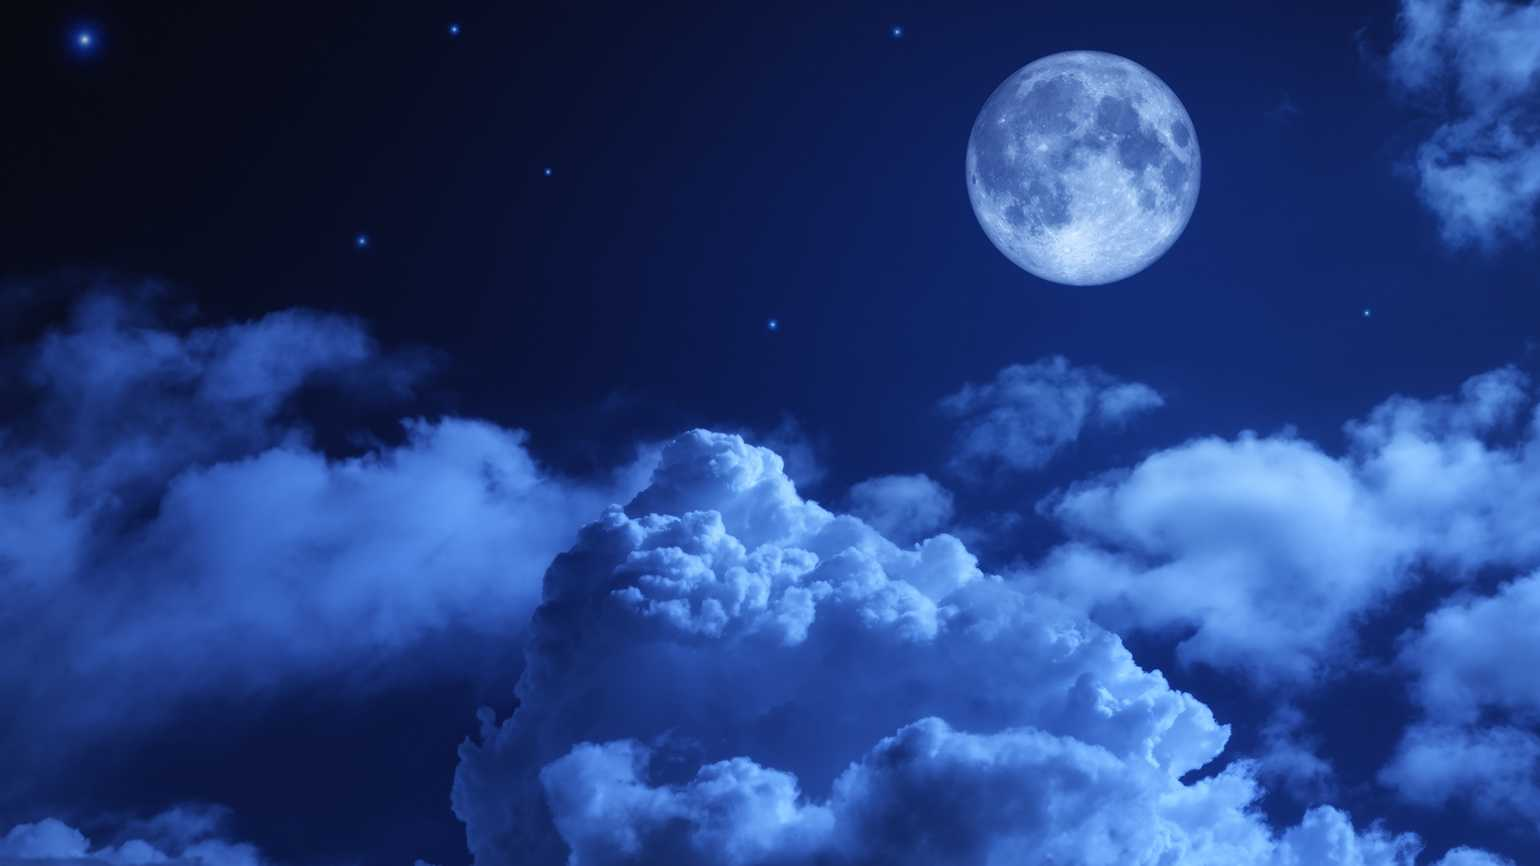 Puffy clouds on a moonlit night